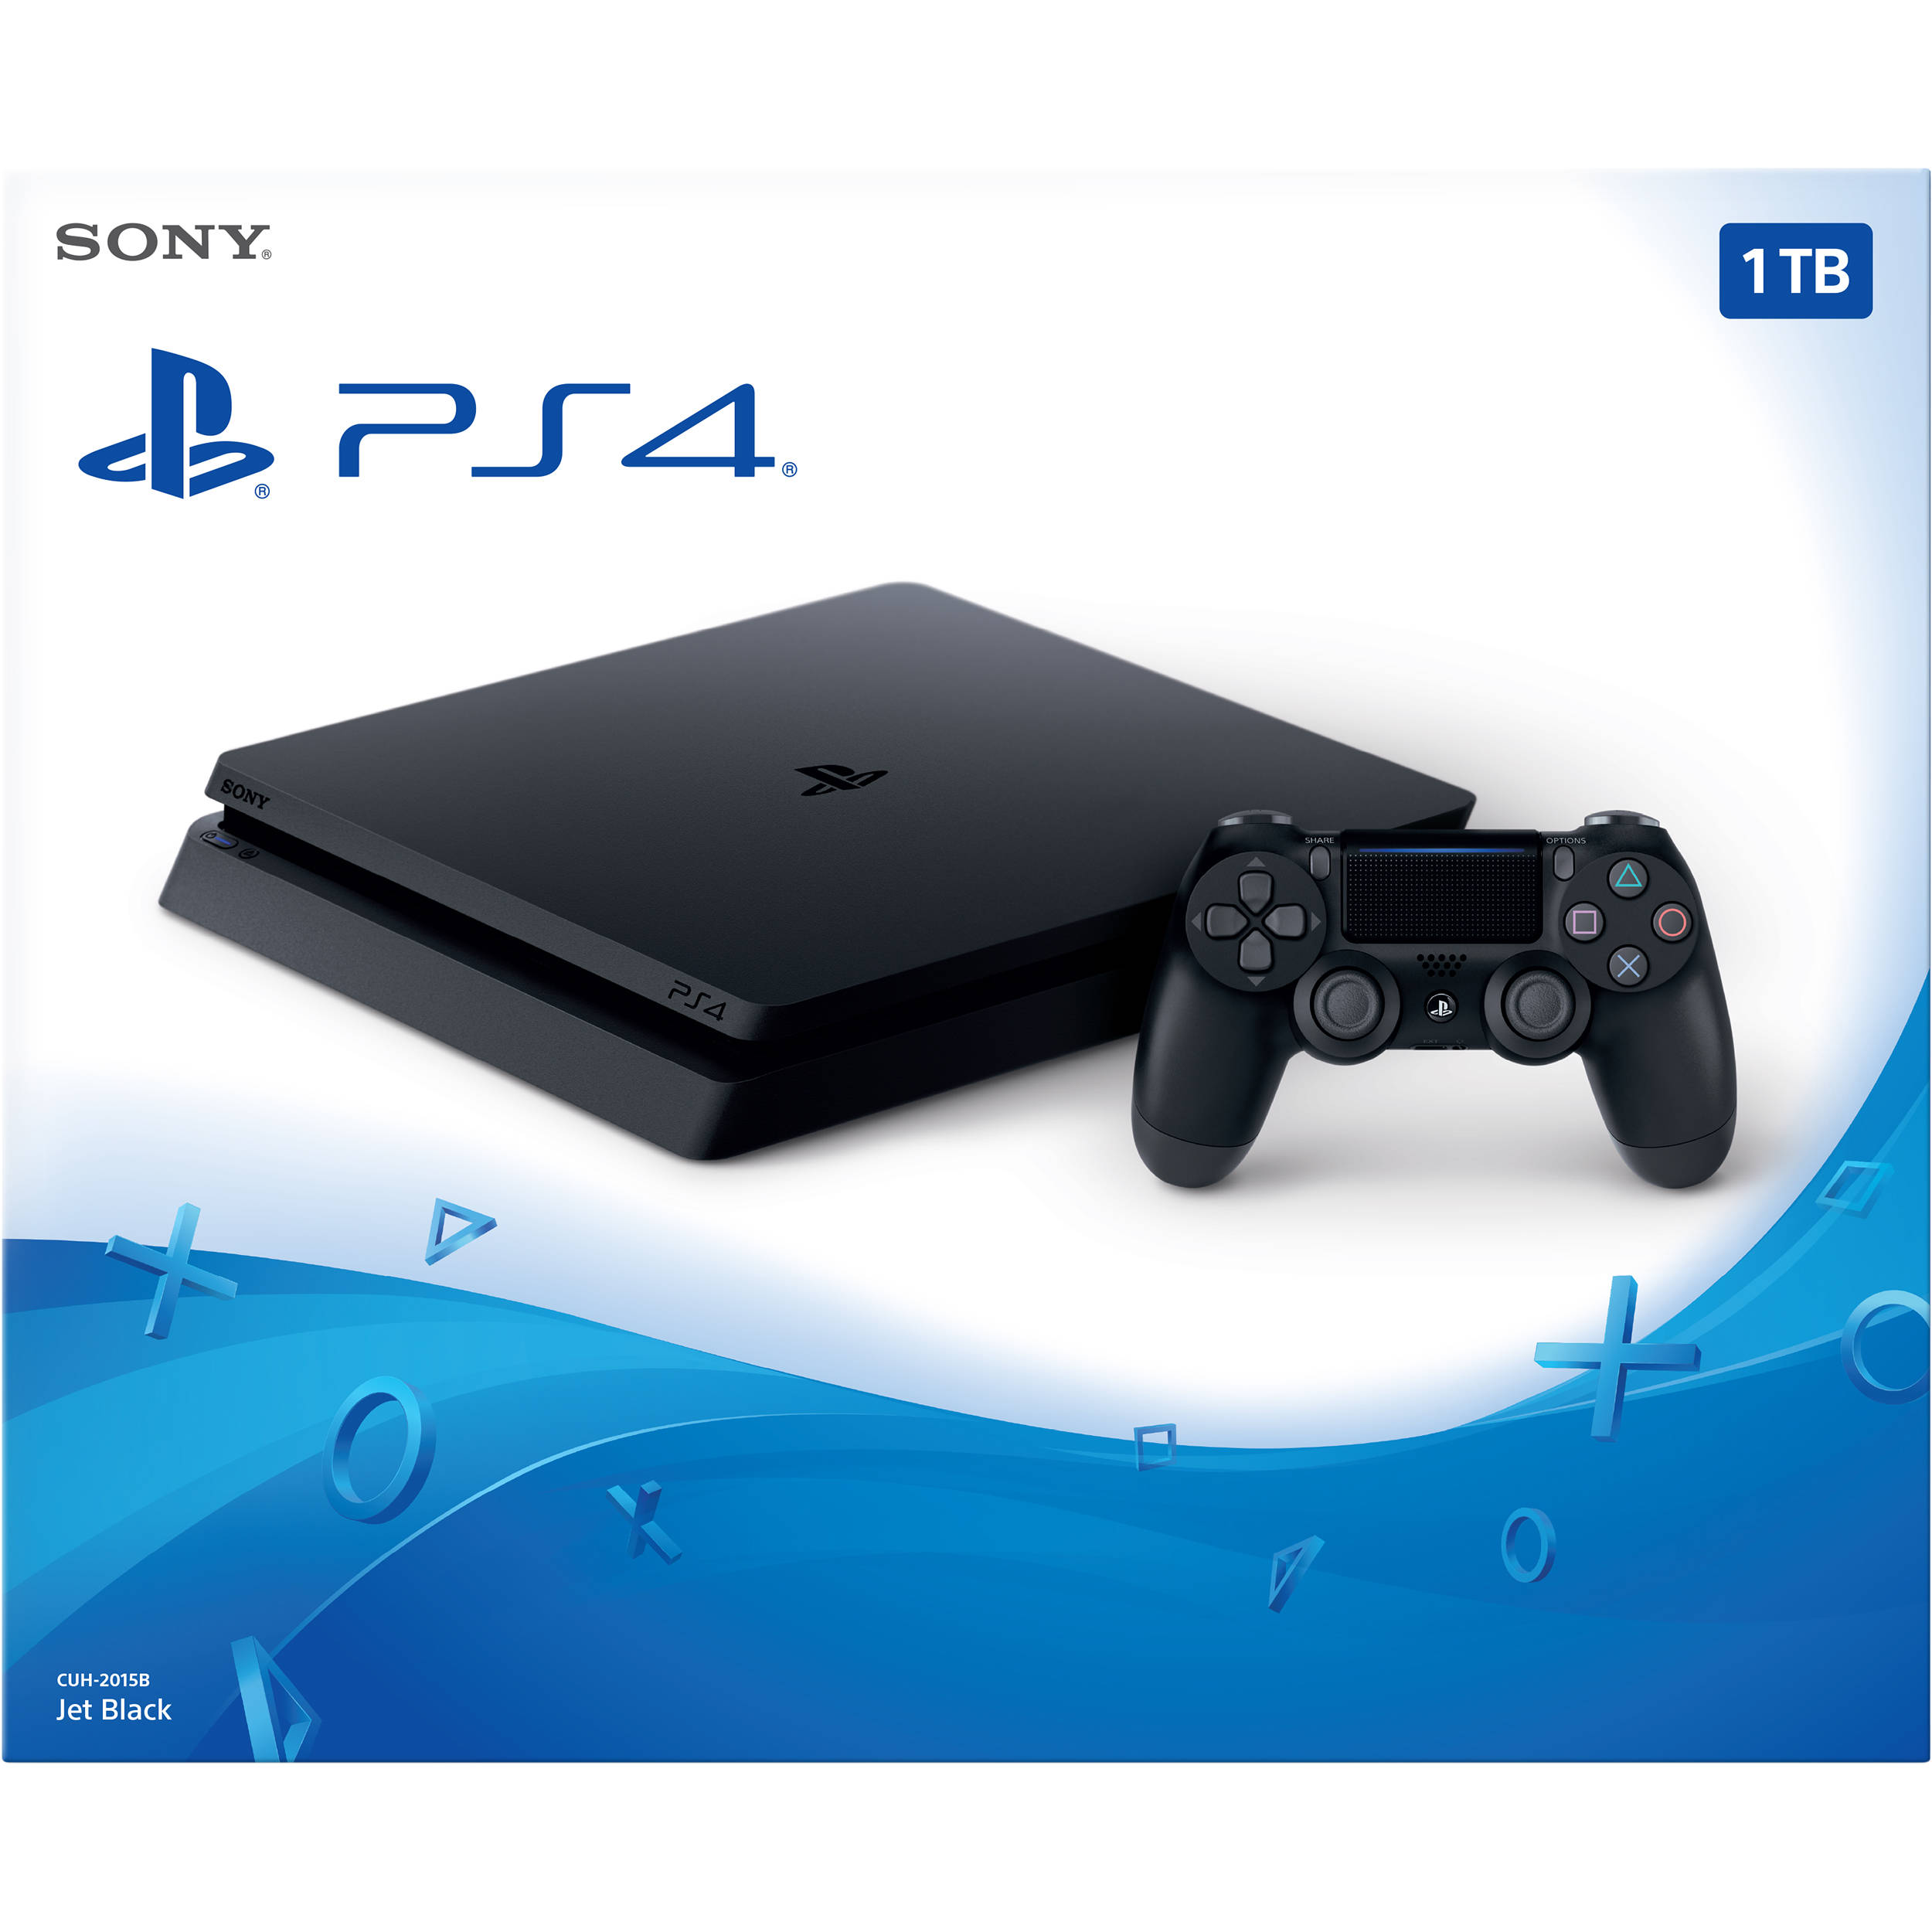 Sony Games For Ps4 : Sony playstation gaming console b h photo video